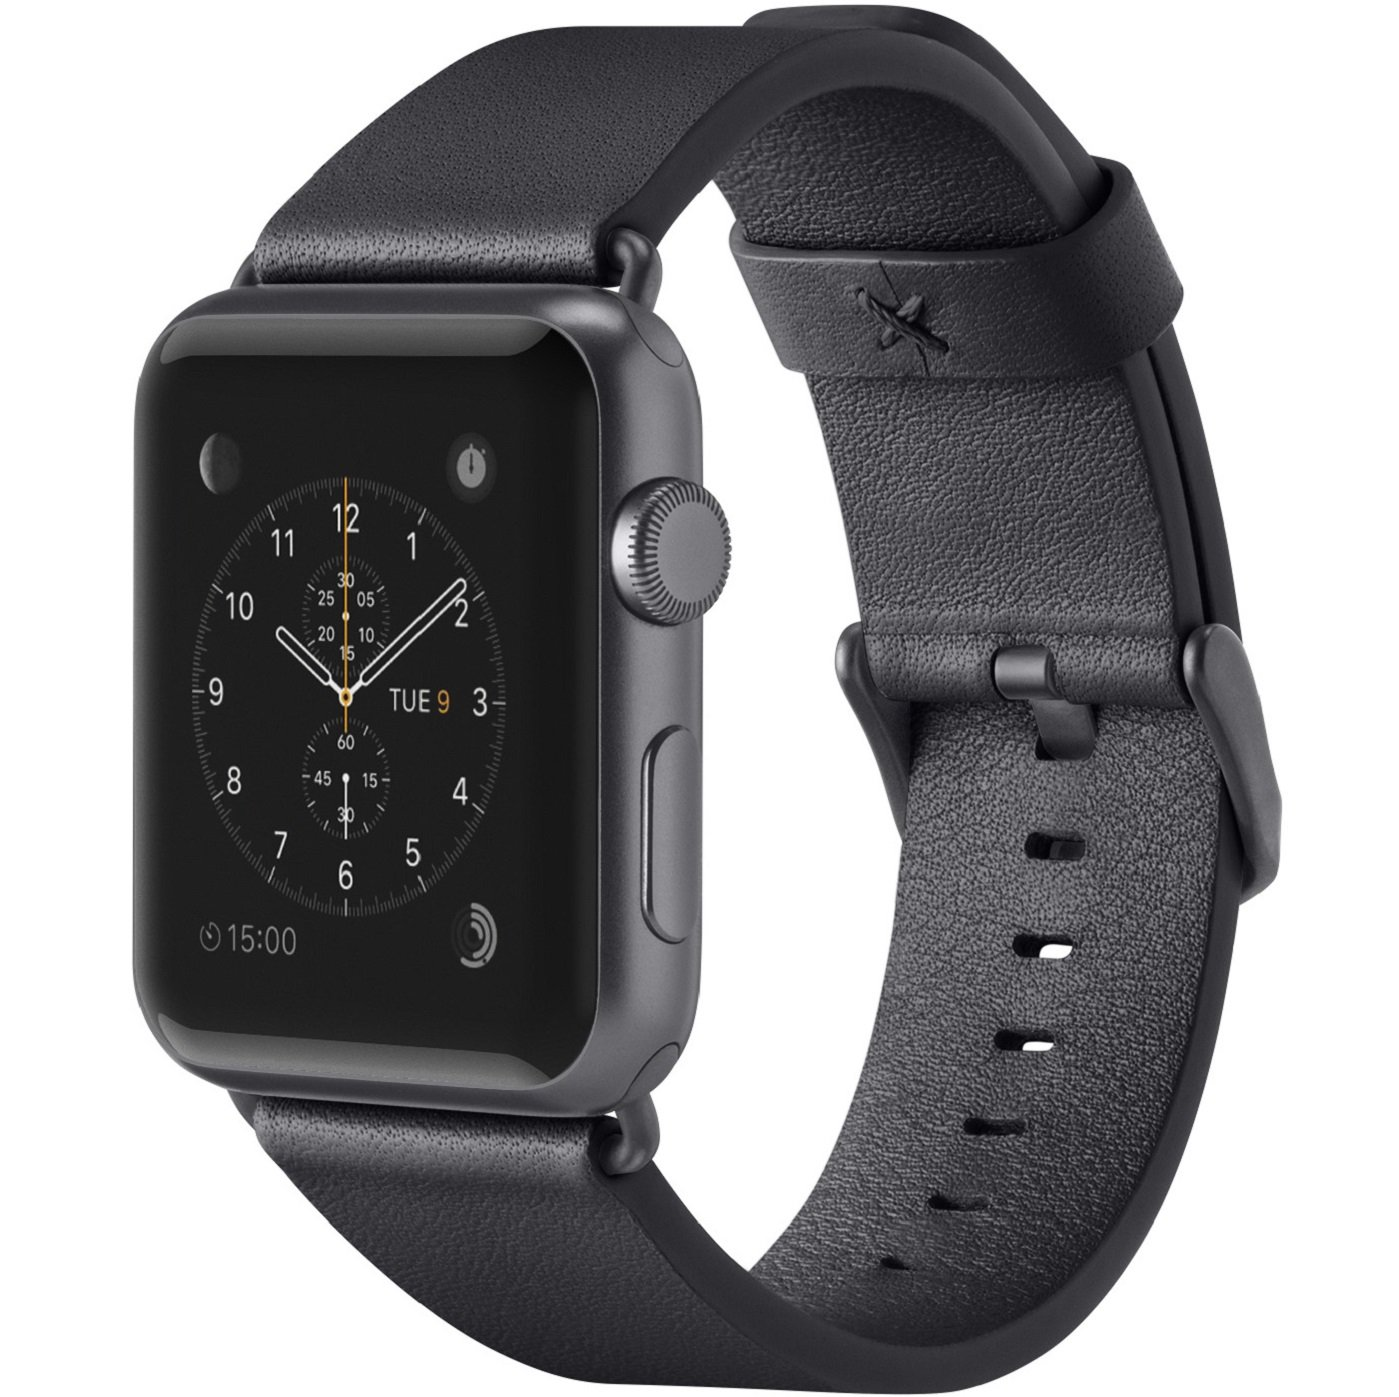 Belkin Classic Leather Wristband for Apple Watch Edition,Apple Watch Nike+,Apple Watch Series 1,Apple Watch Series 2,Apple Watch Series 3, Apple Watch Sport, Black